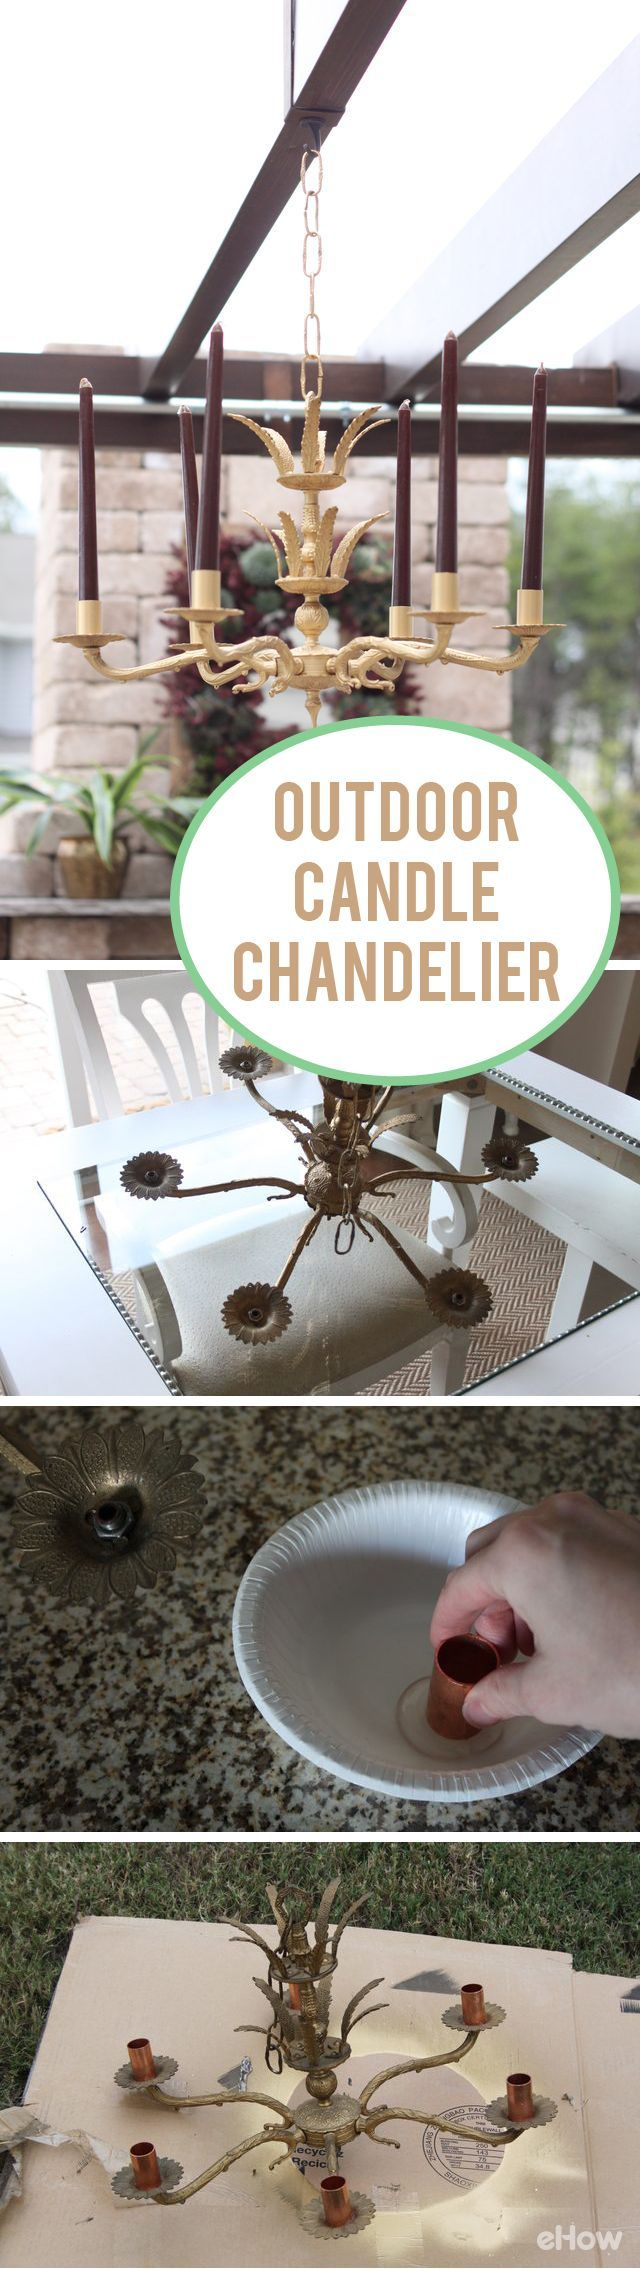 Completely transform and upgrade your backyard space with an outdoor candle chandelier.  Imagine the soft glow of the candles adding a cozy and intimate setting while your entertain guests or want to watch the stars in the night sky.. DIY instructions here: http://www.ehow.com/how_12342943_make-outdoor-candle-chandelier.html?utm_source=pinterest.com&utm_medium=referral&utm_content=freestyle&utm_campaign=fanpage